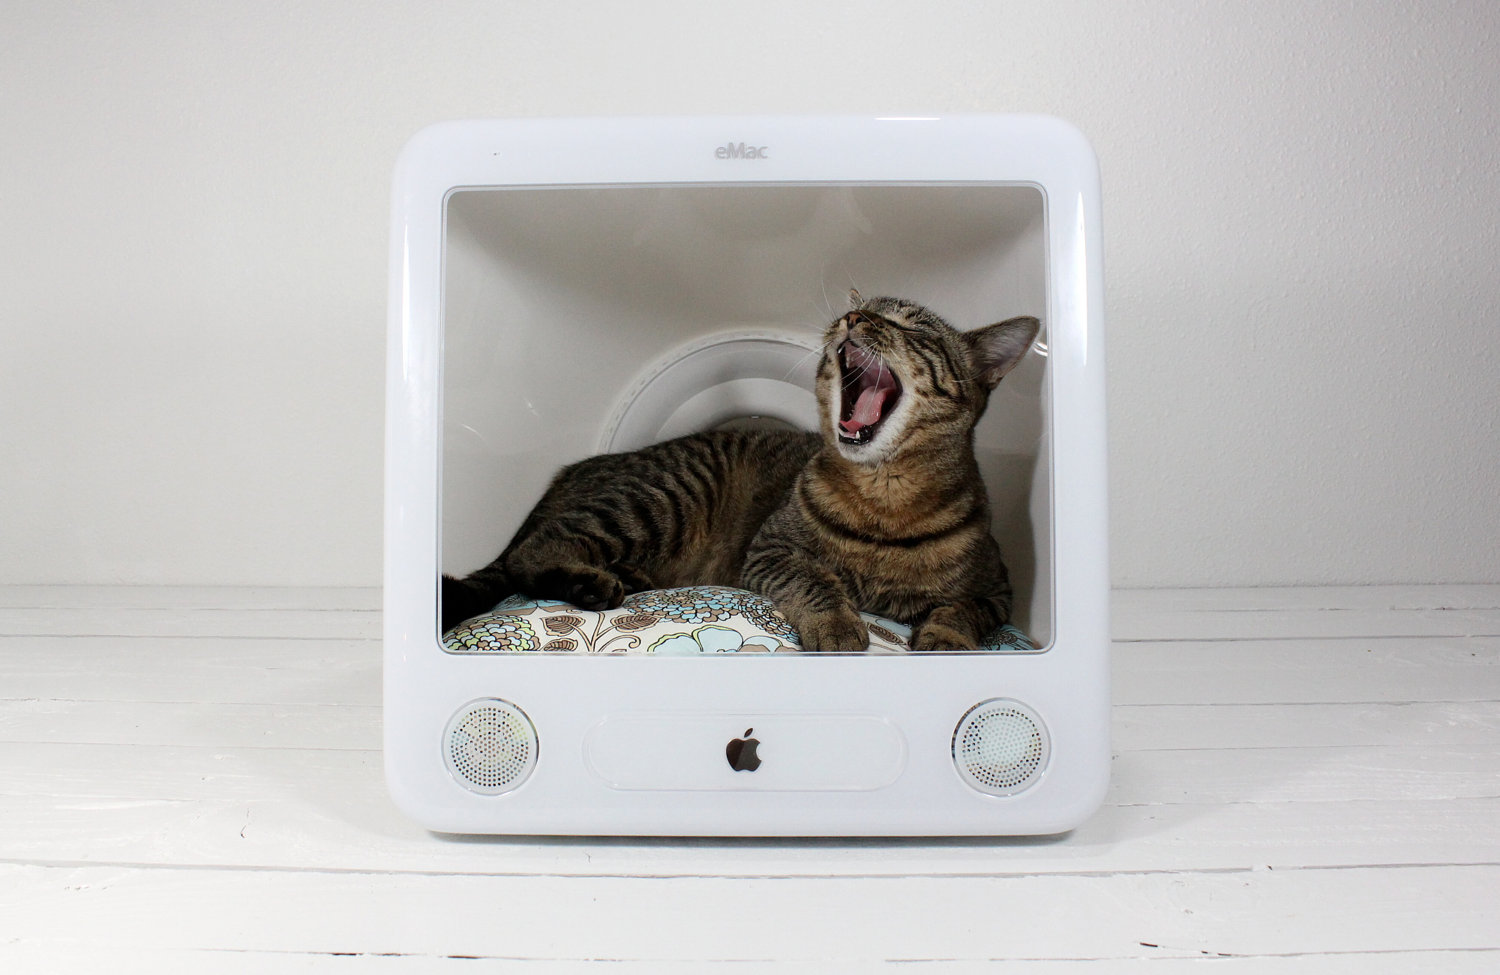 Cat in Mac